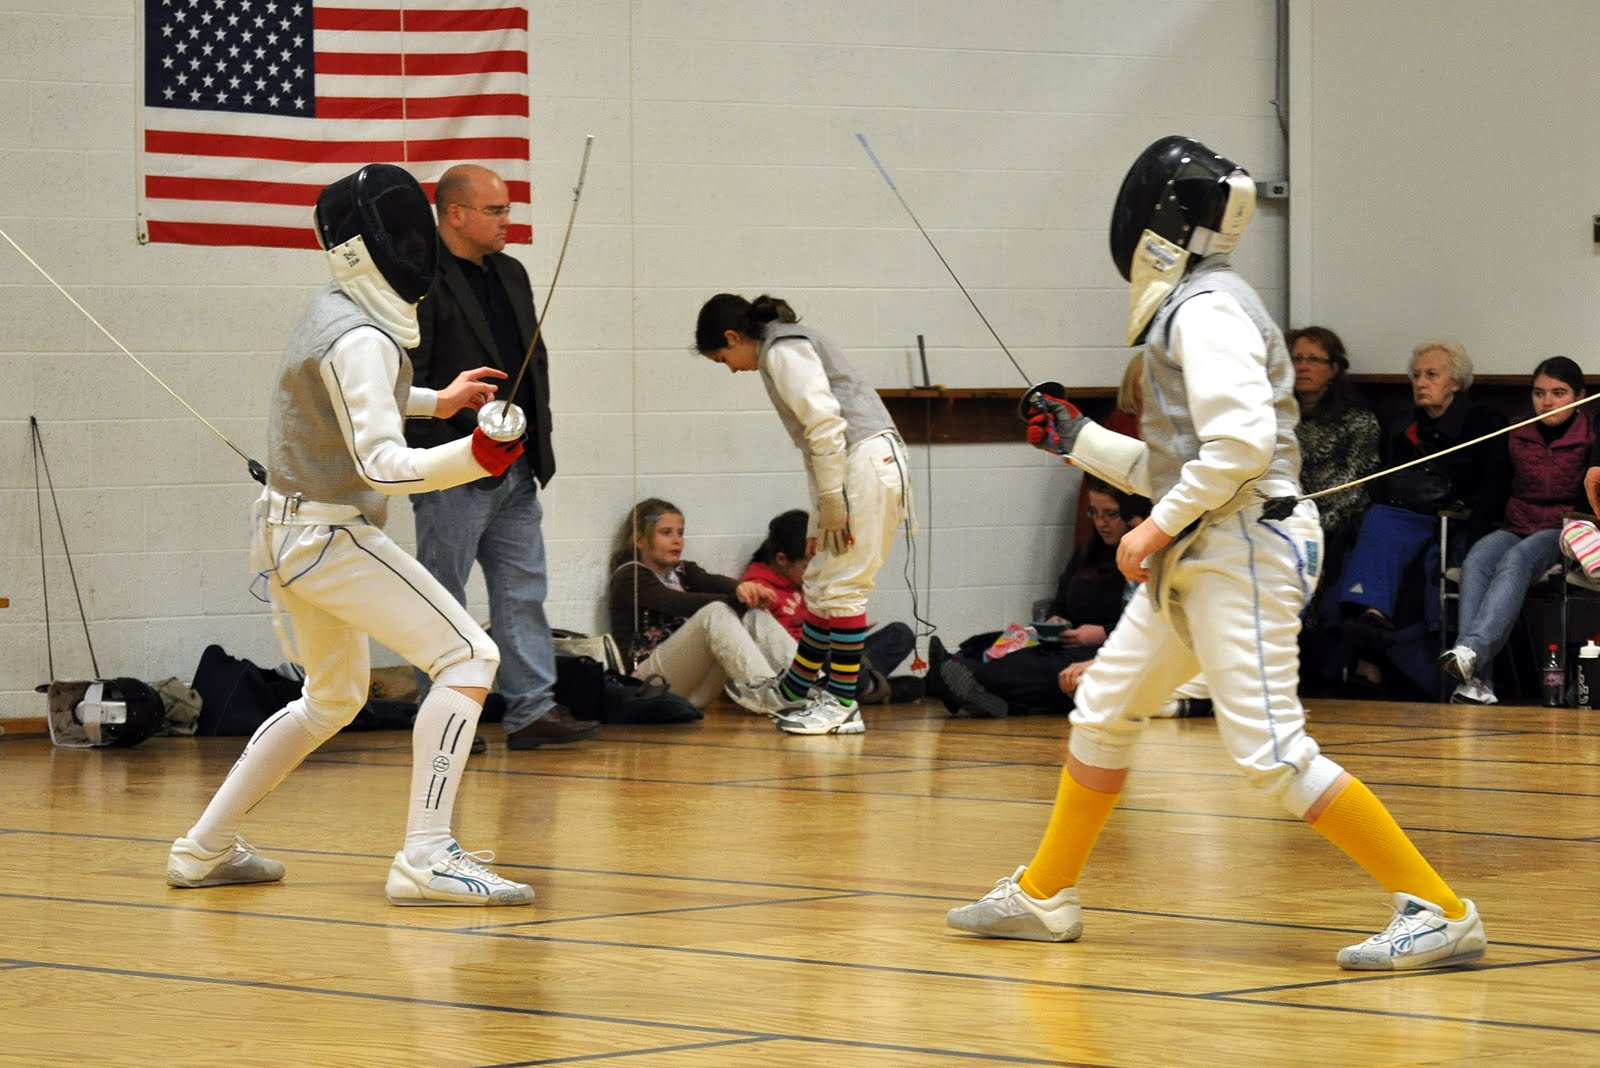 Grand Rapids Fencing Academy